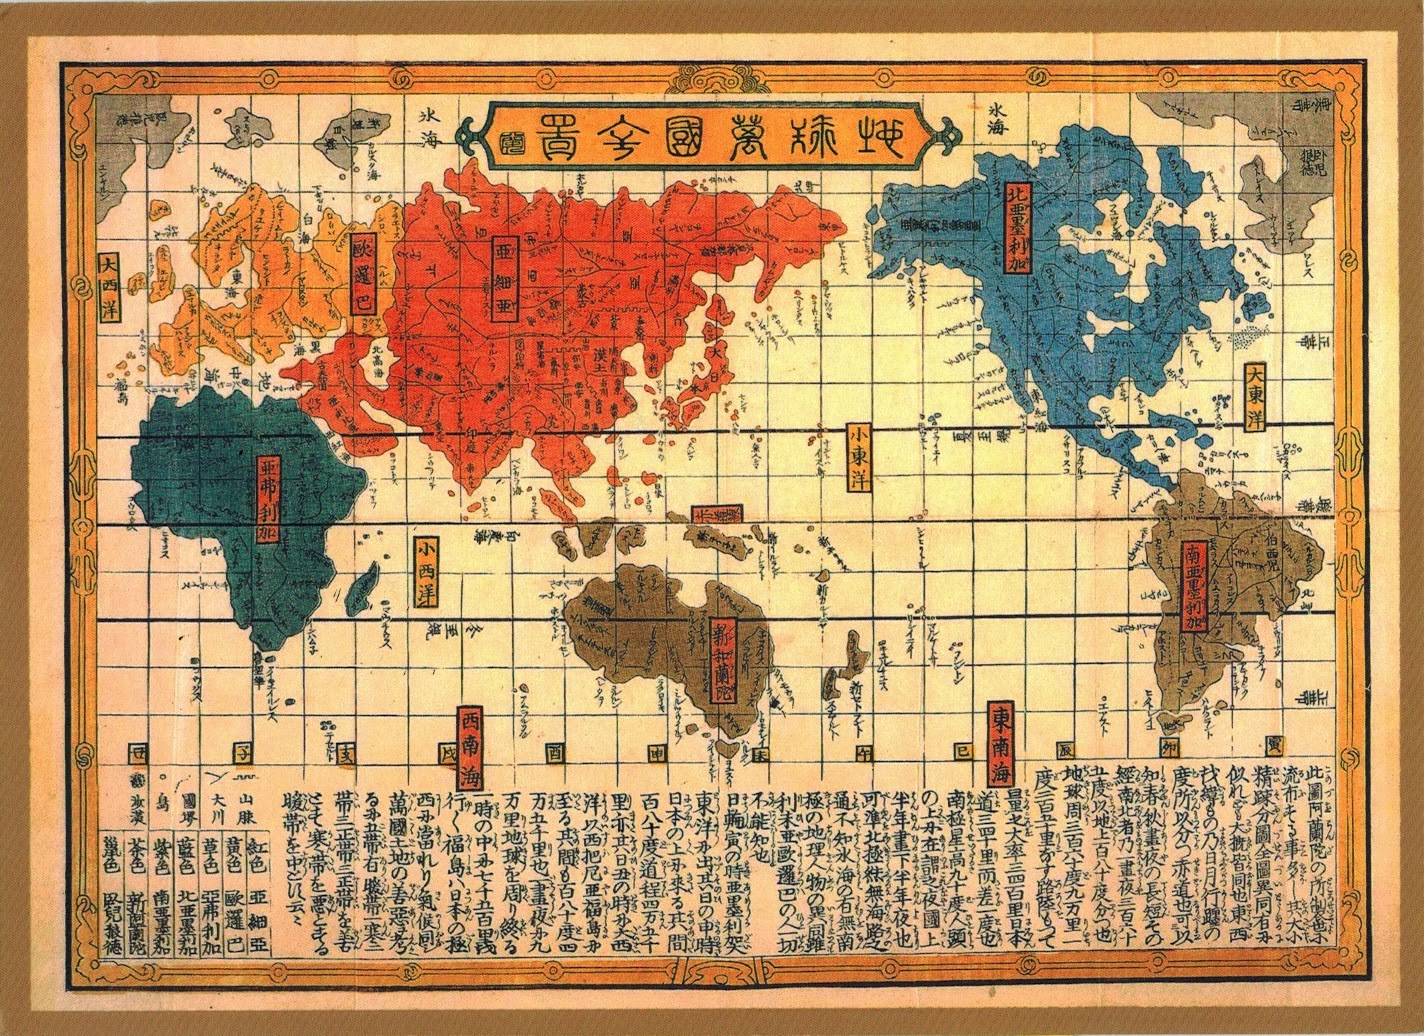 Map cards hunting 0295 old japanese world map 0295 old japanese world map gumiabroncs Images